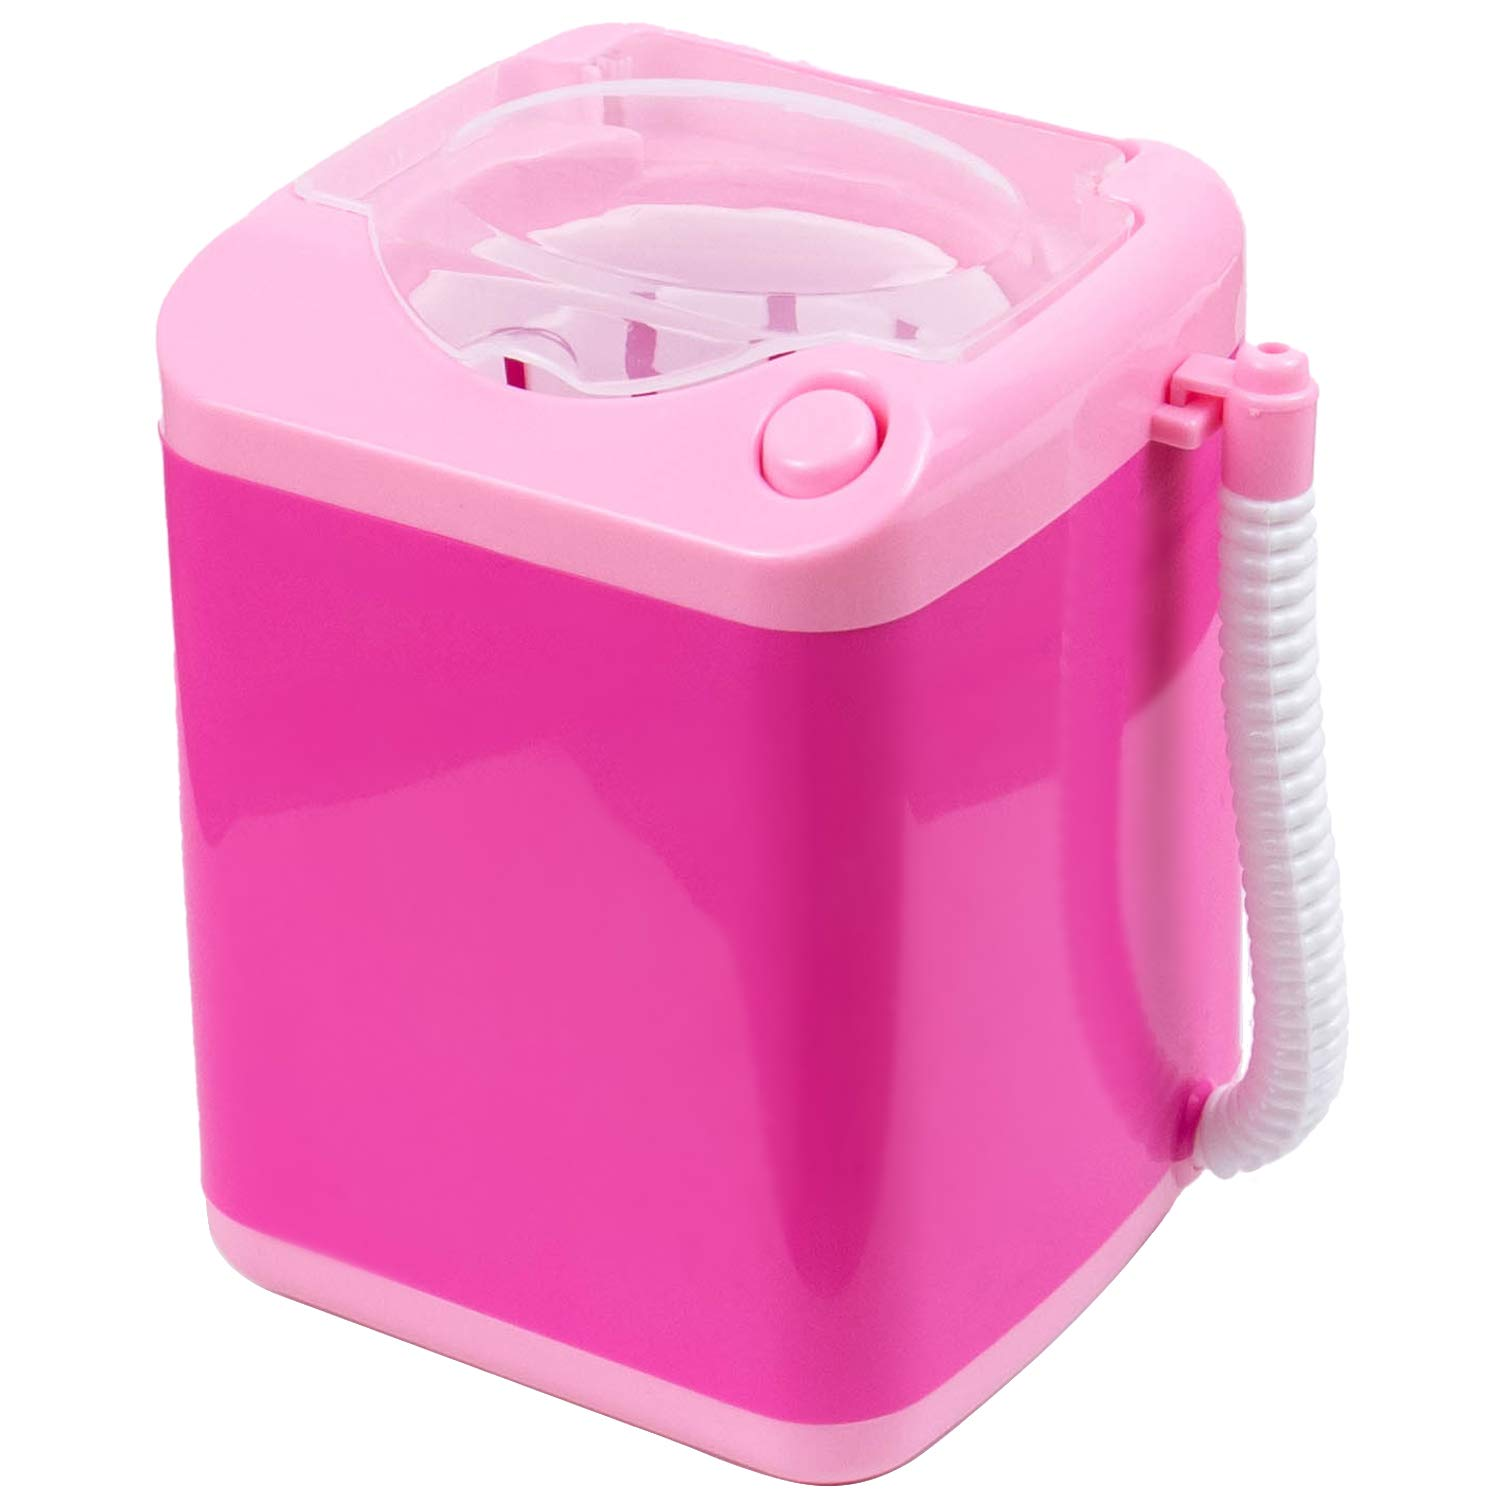 AUEAR, Makeup Brush Sponge Washing Machine Cleaner Device Plastic Mini Automatic Claening (Pink, with Bucket)